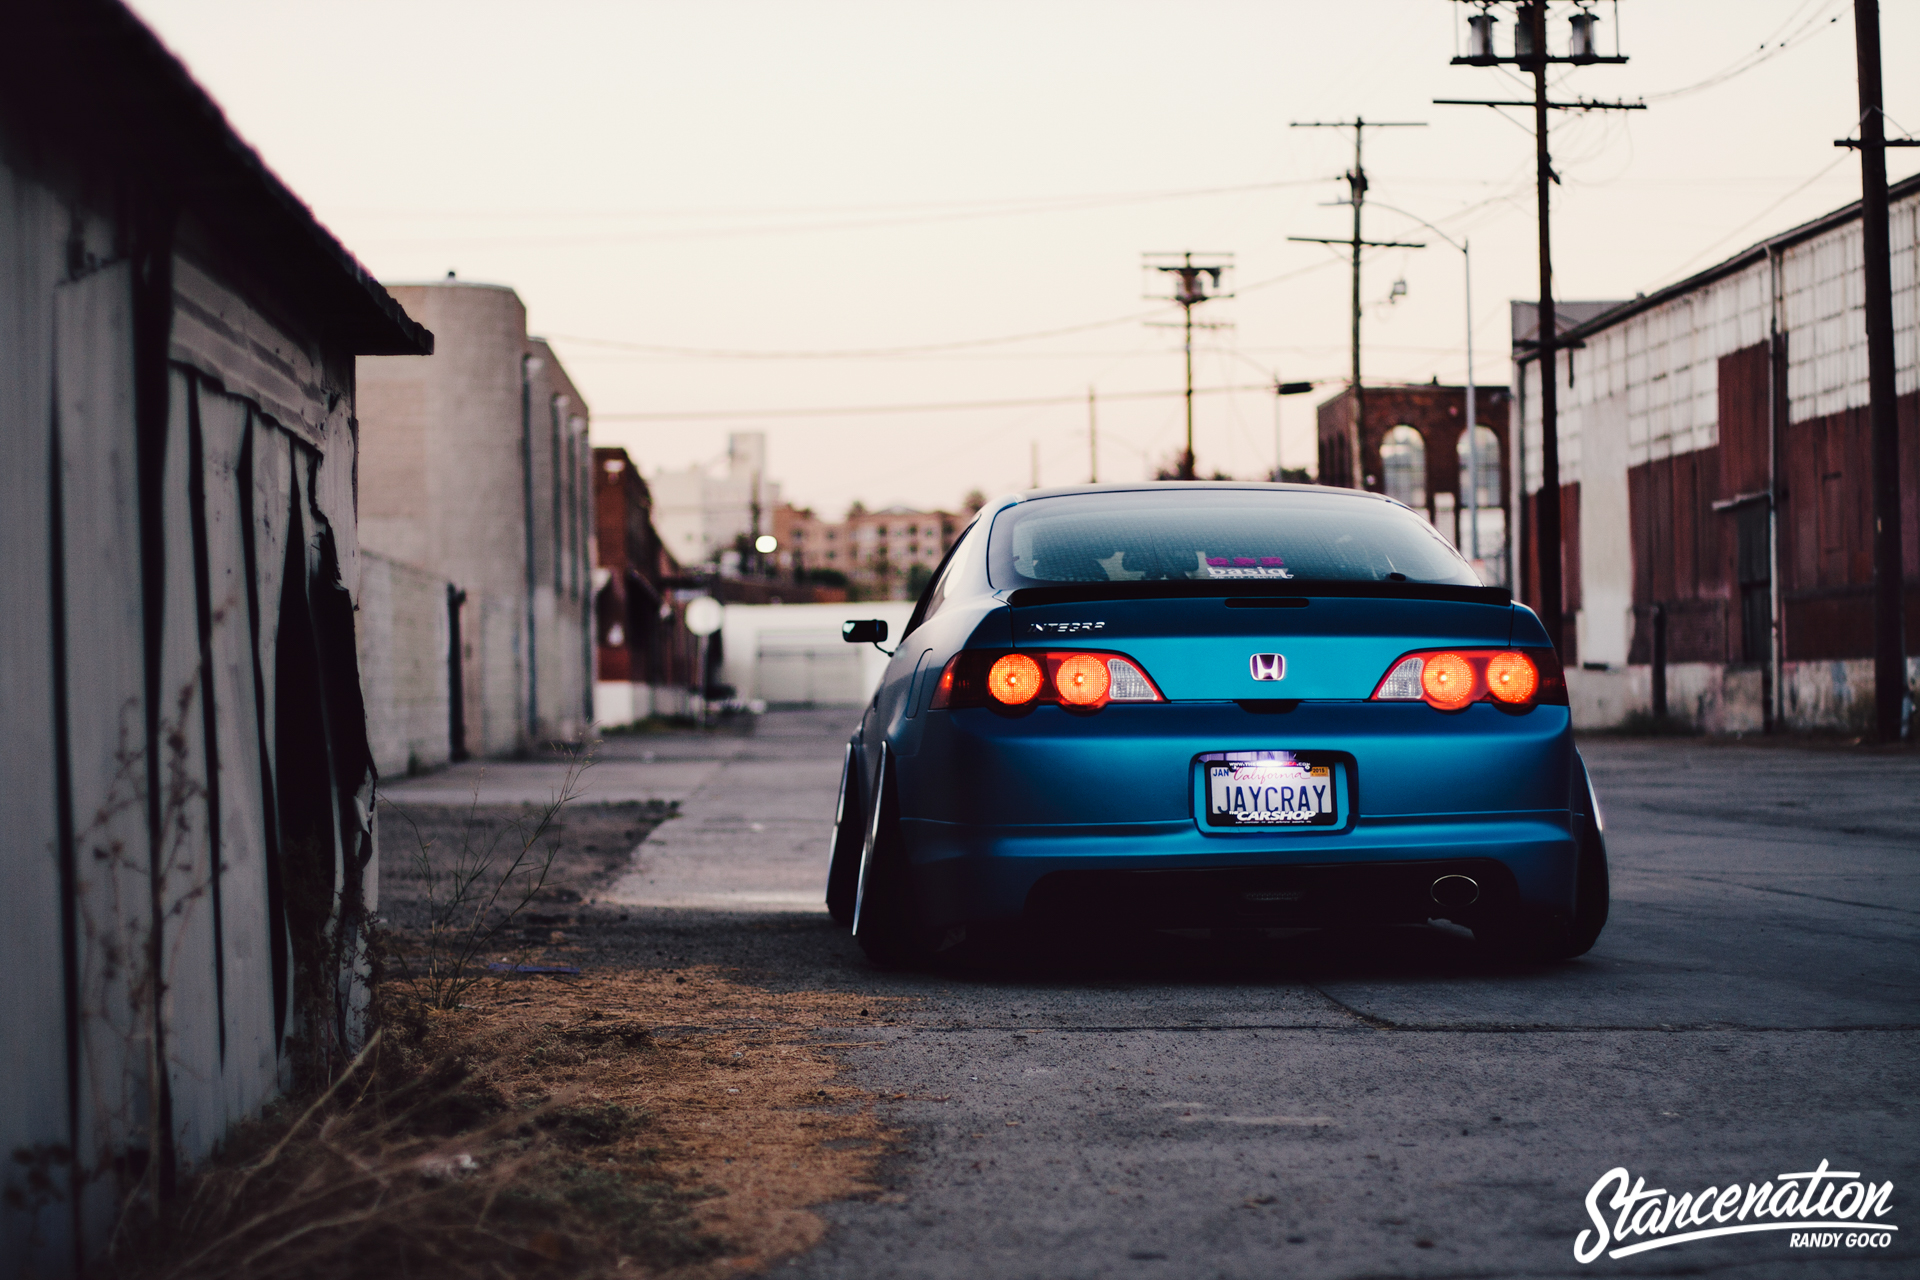 Modified Sports Car Wallpaper Jaycray Is The Name Jerald S Acura Rsx Stancenation